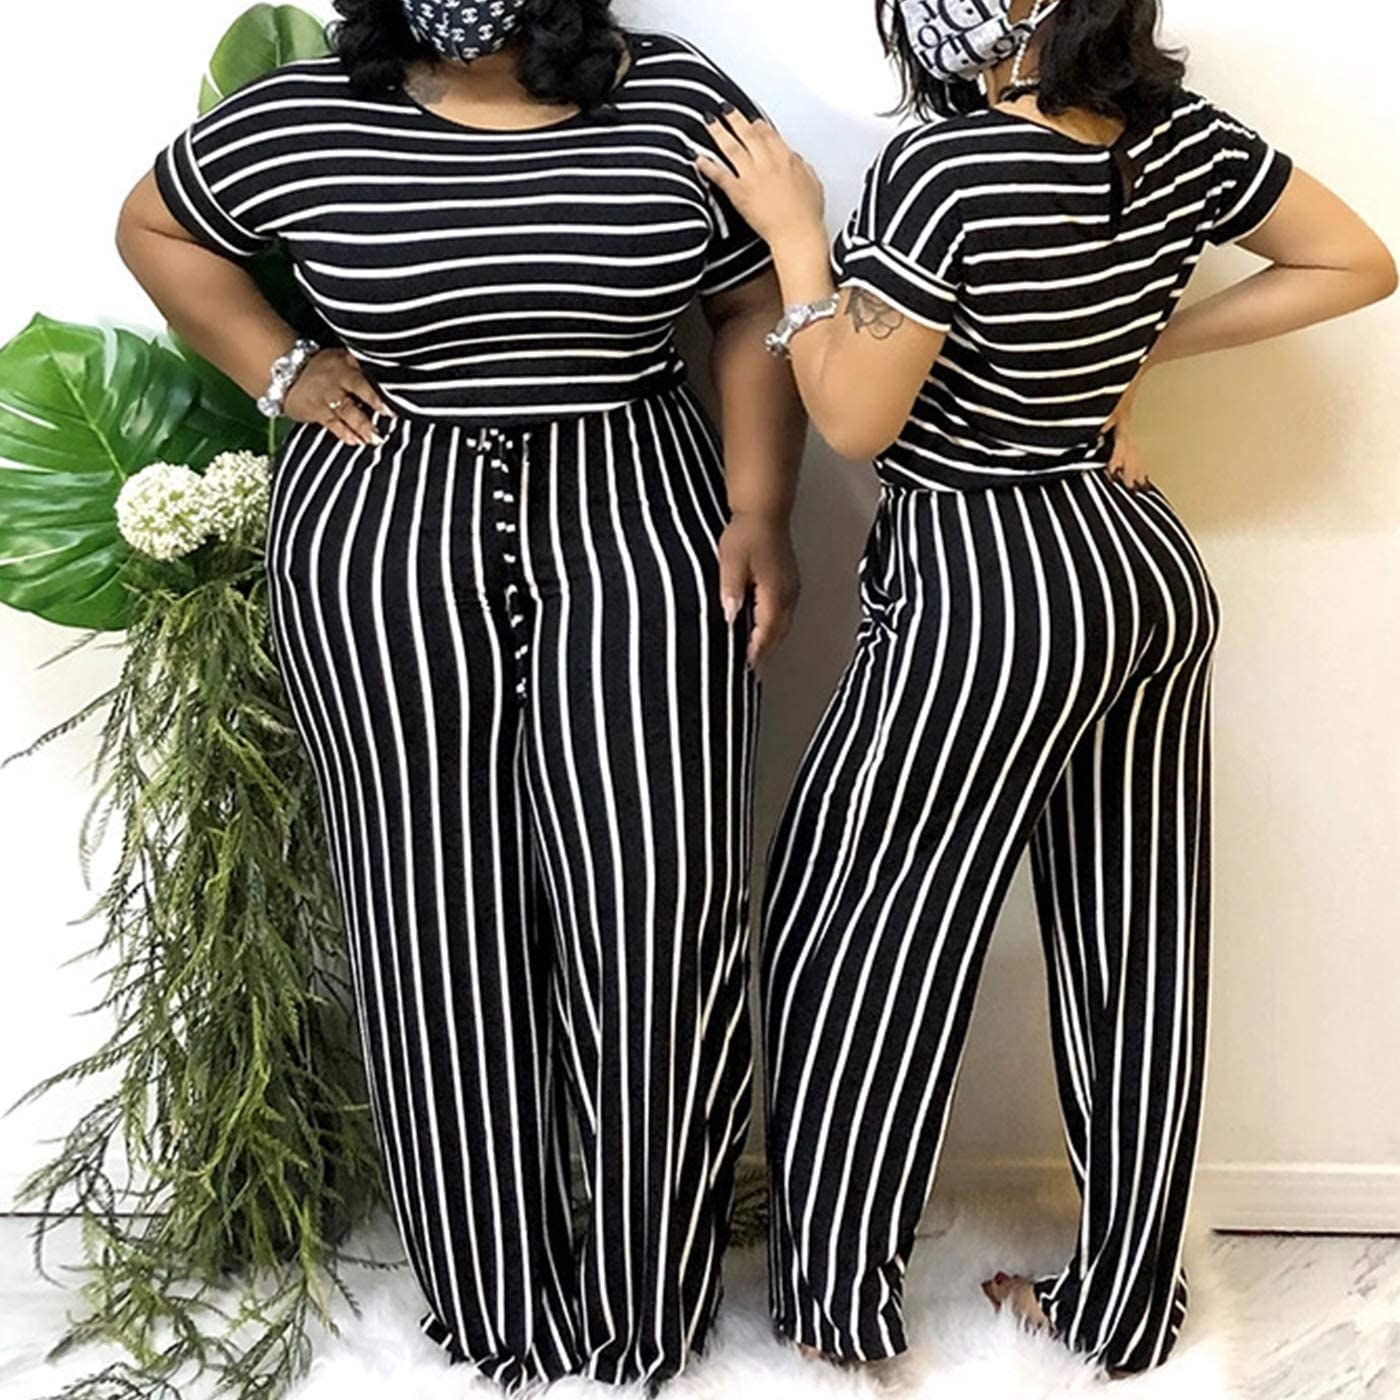 close up of two models wearing the black and white striped jumpsuit